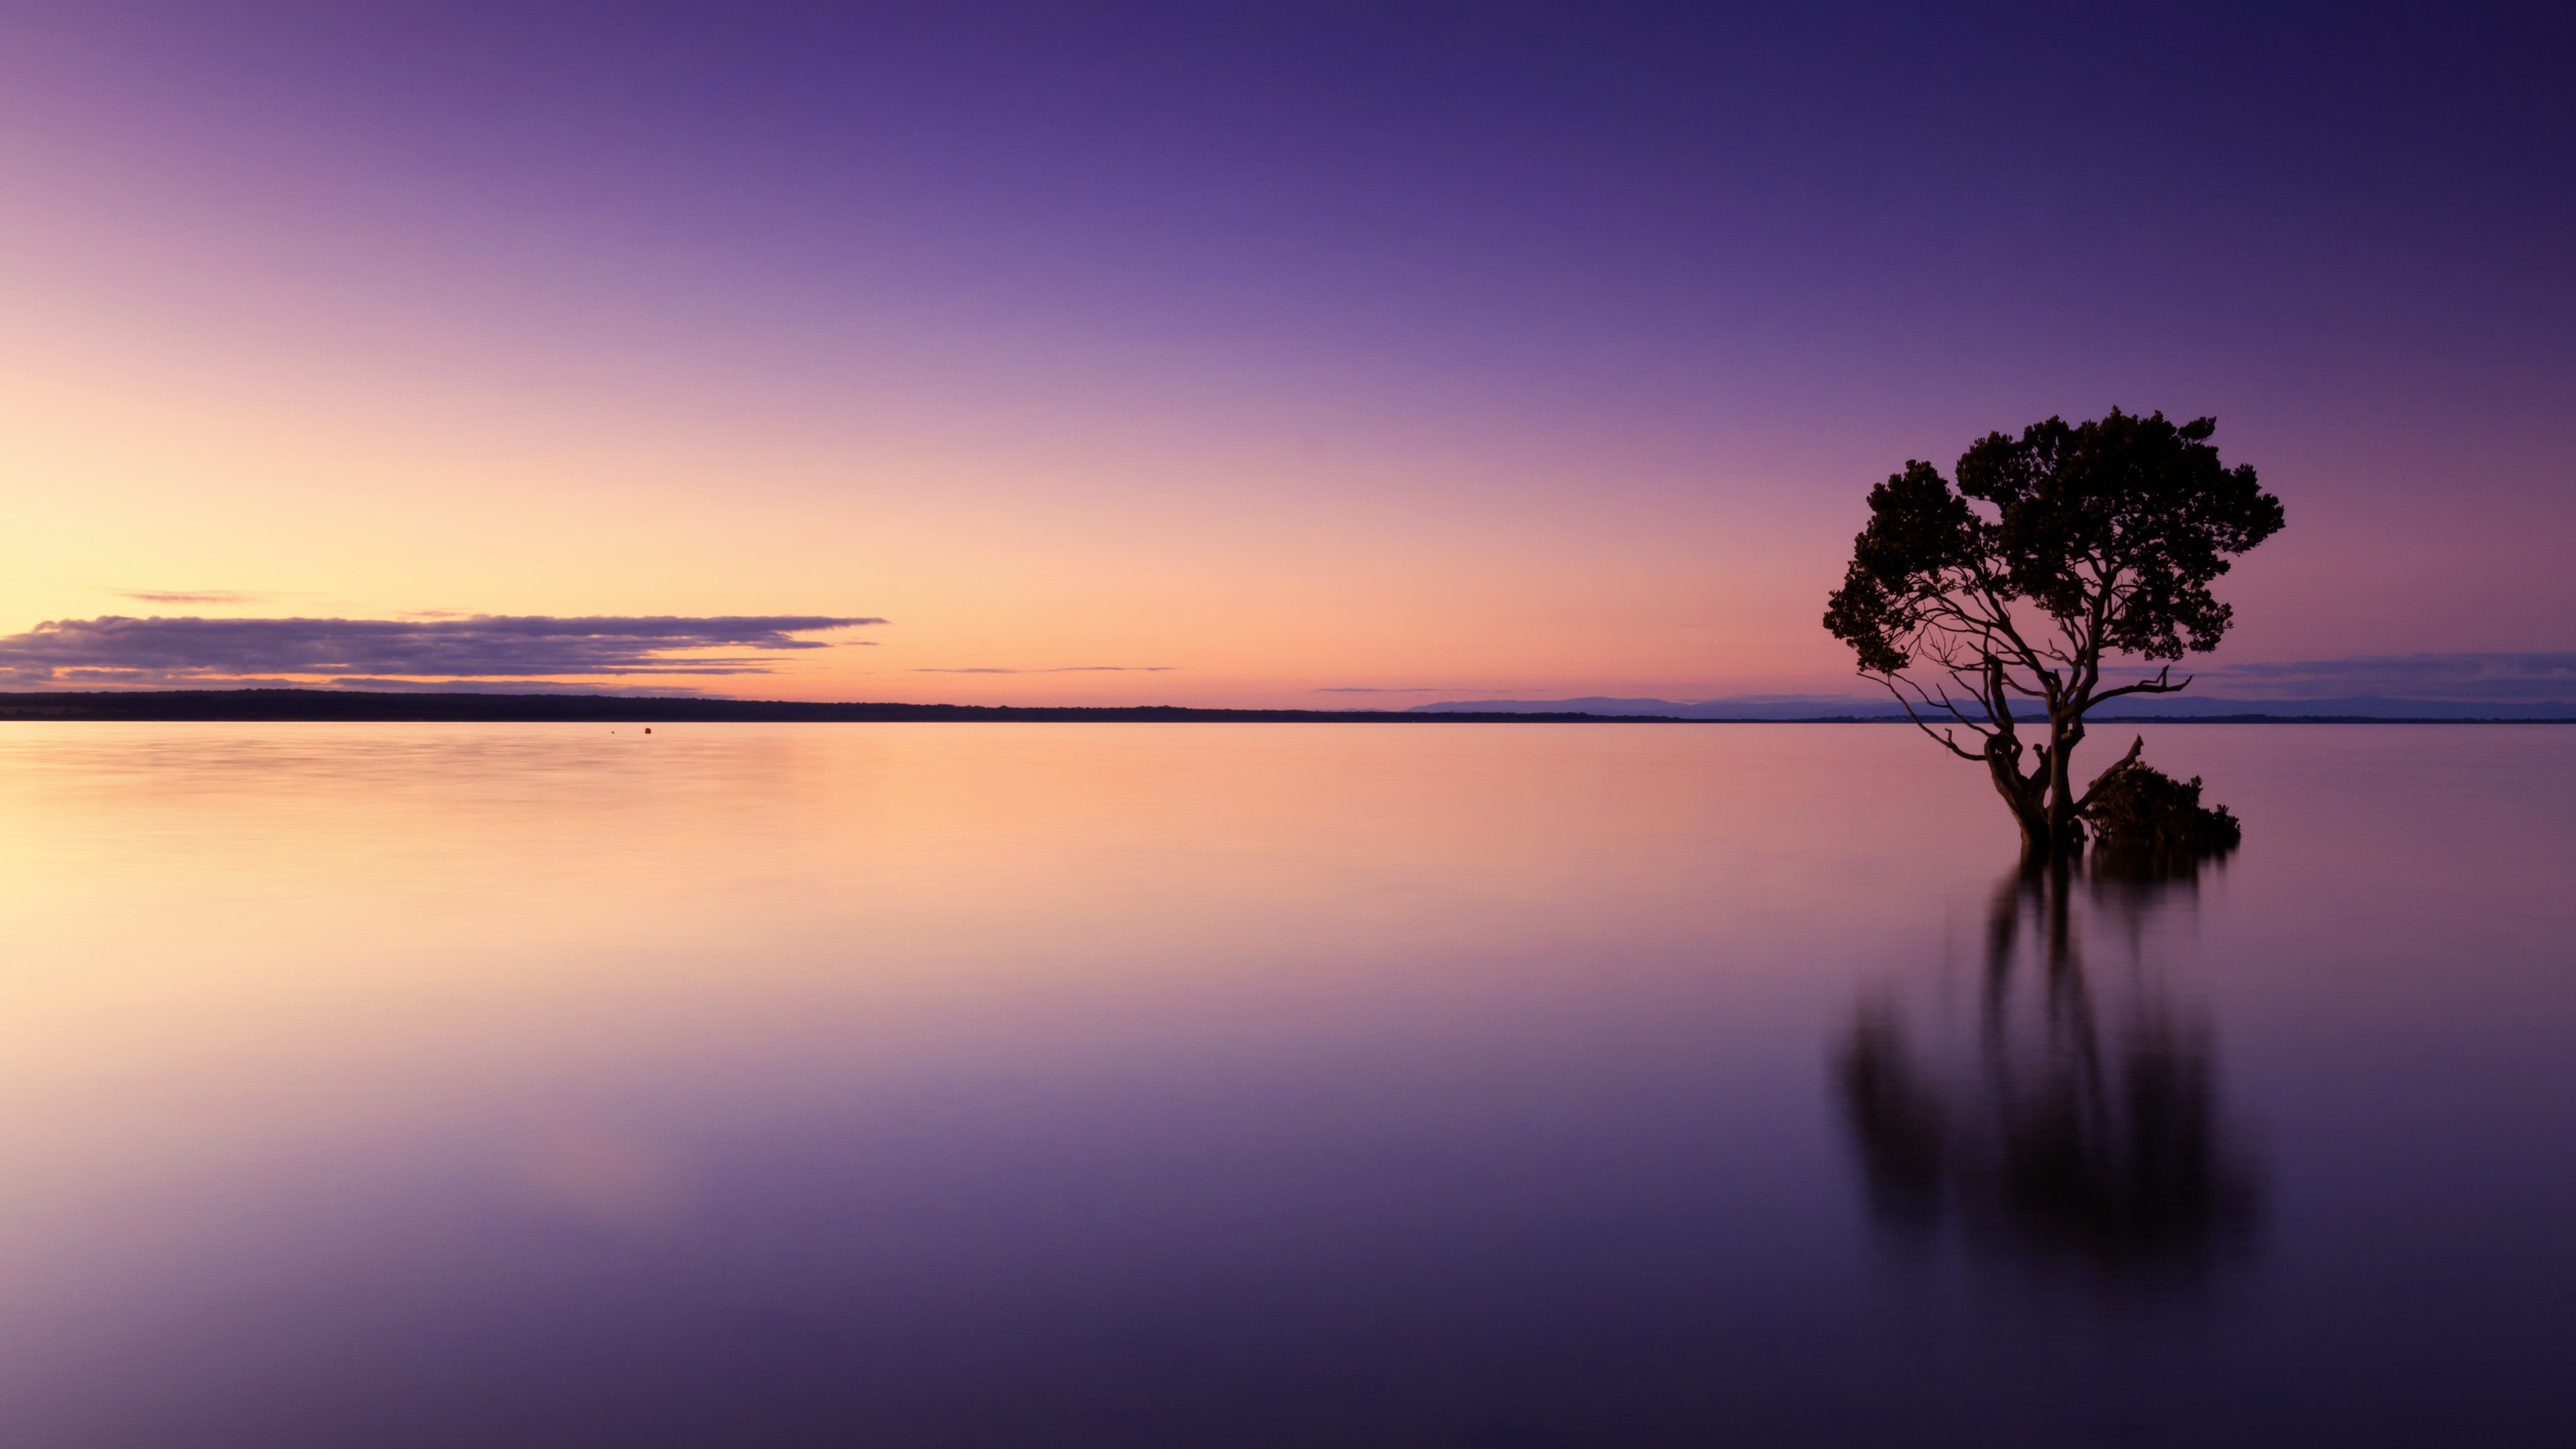 Scenic view of sea against sky at sunset photo